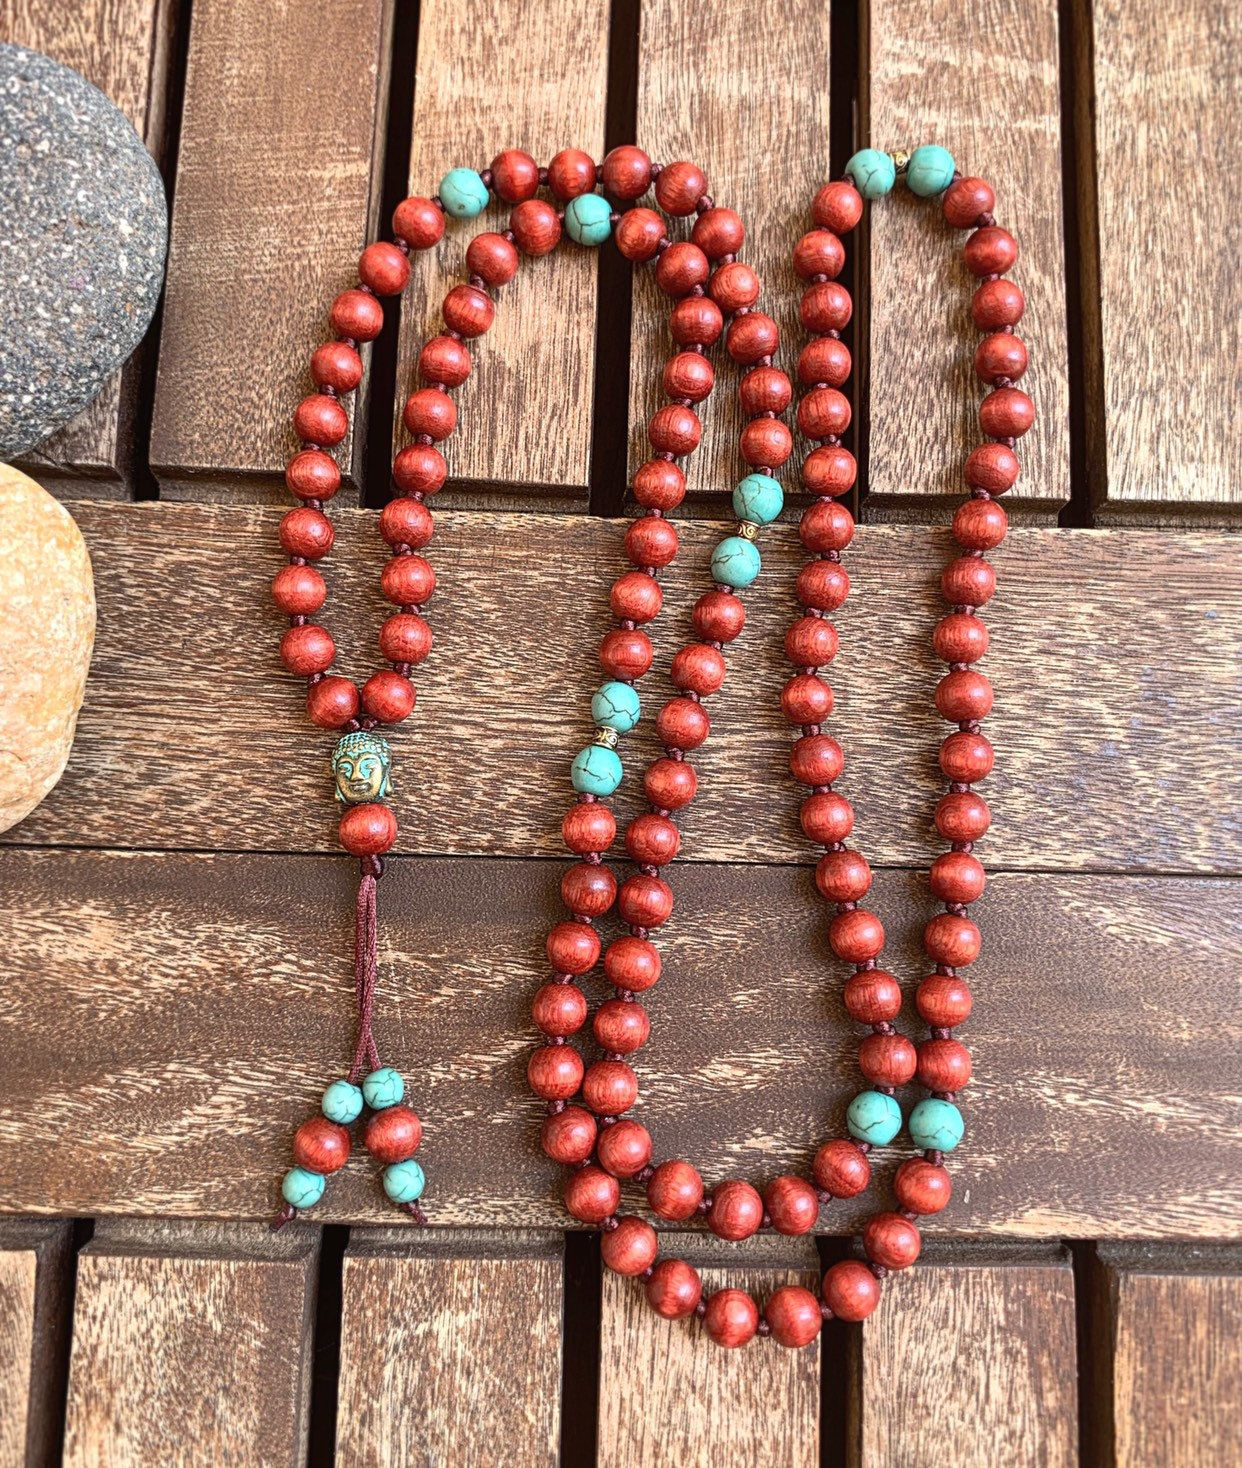 108 Bead Malawooden Necklacemala Necklacelong Beaded Etsy Mala Bead Necklace Mala Necklace Mala Beads